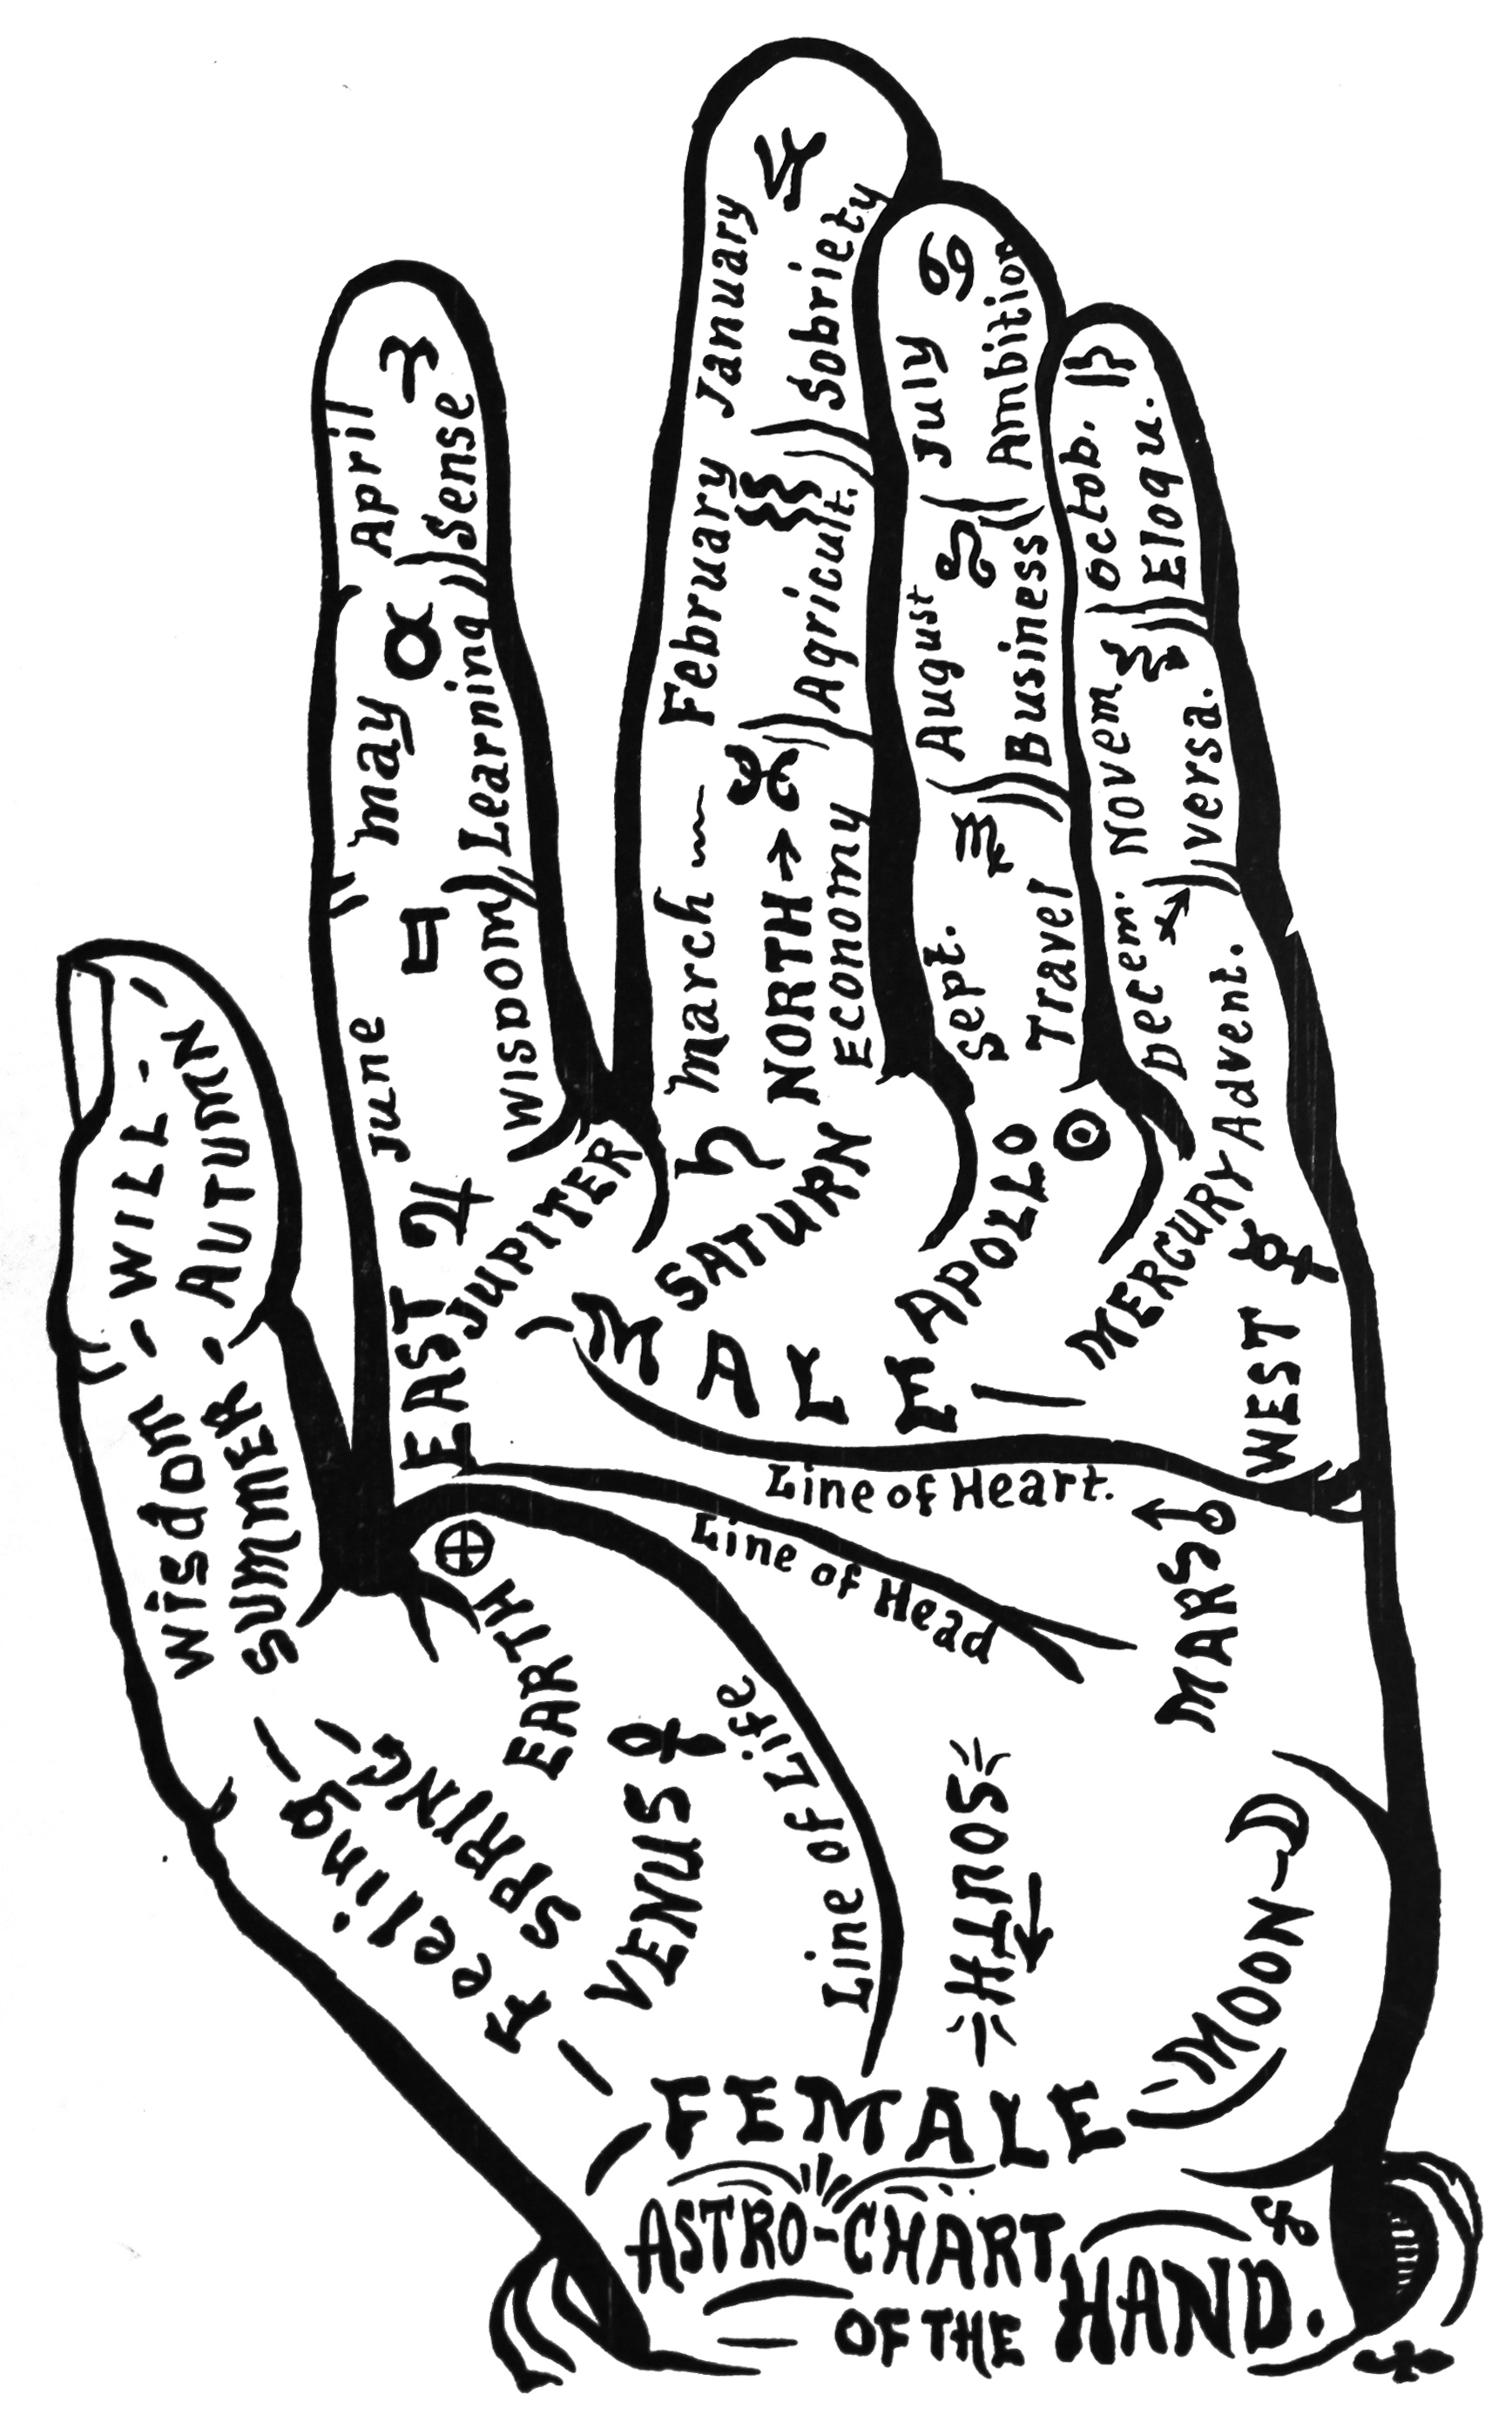 56_astro-chart_of_the_hand_-_palmistry.jpg